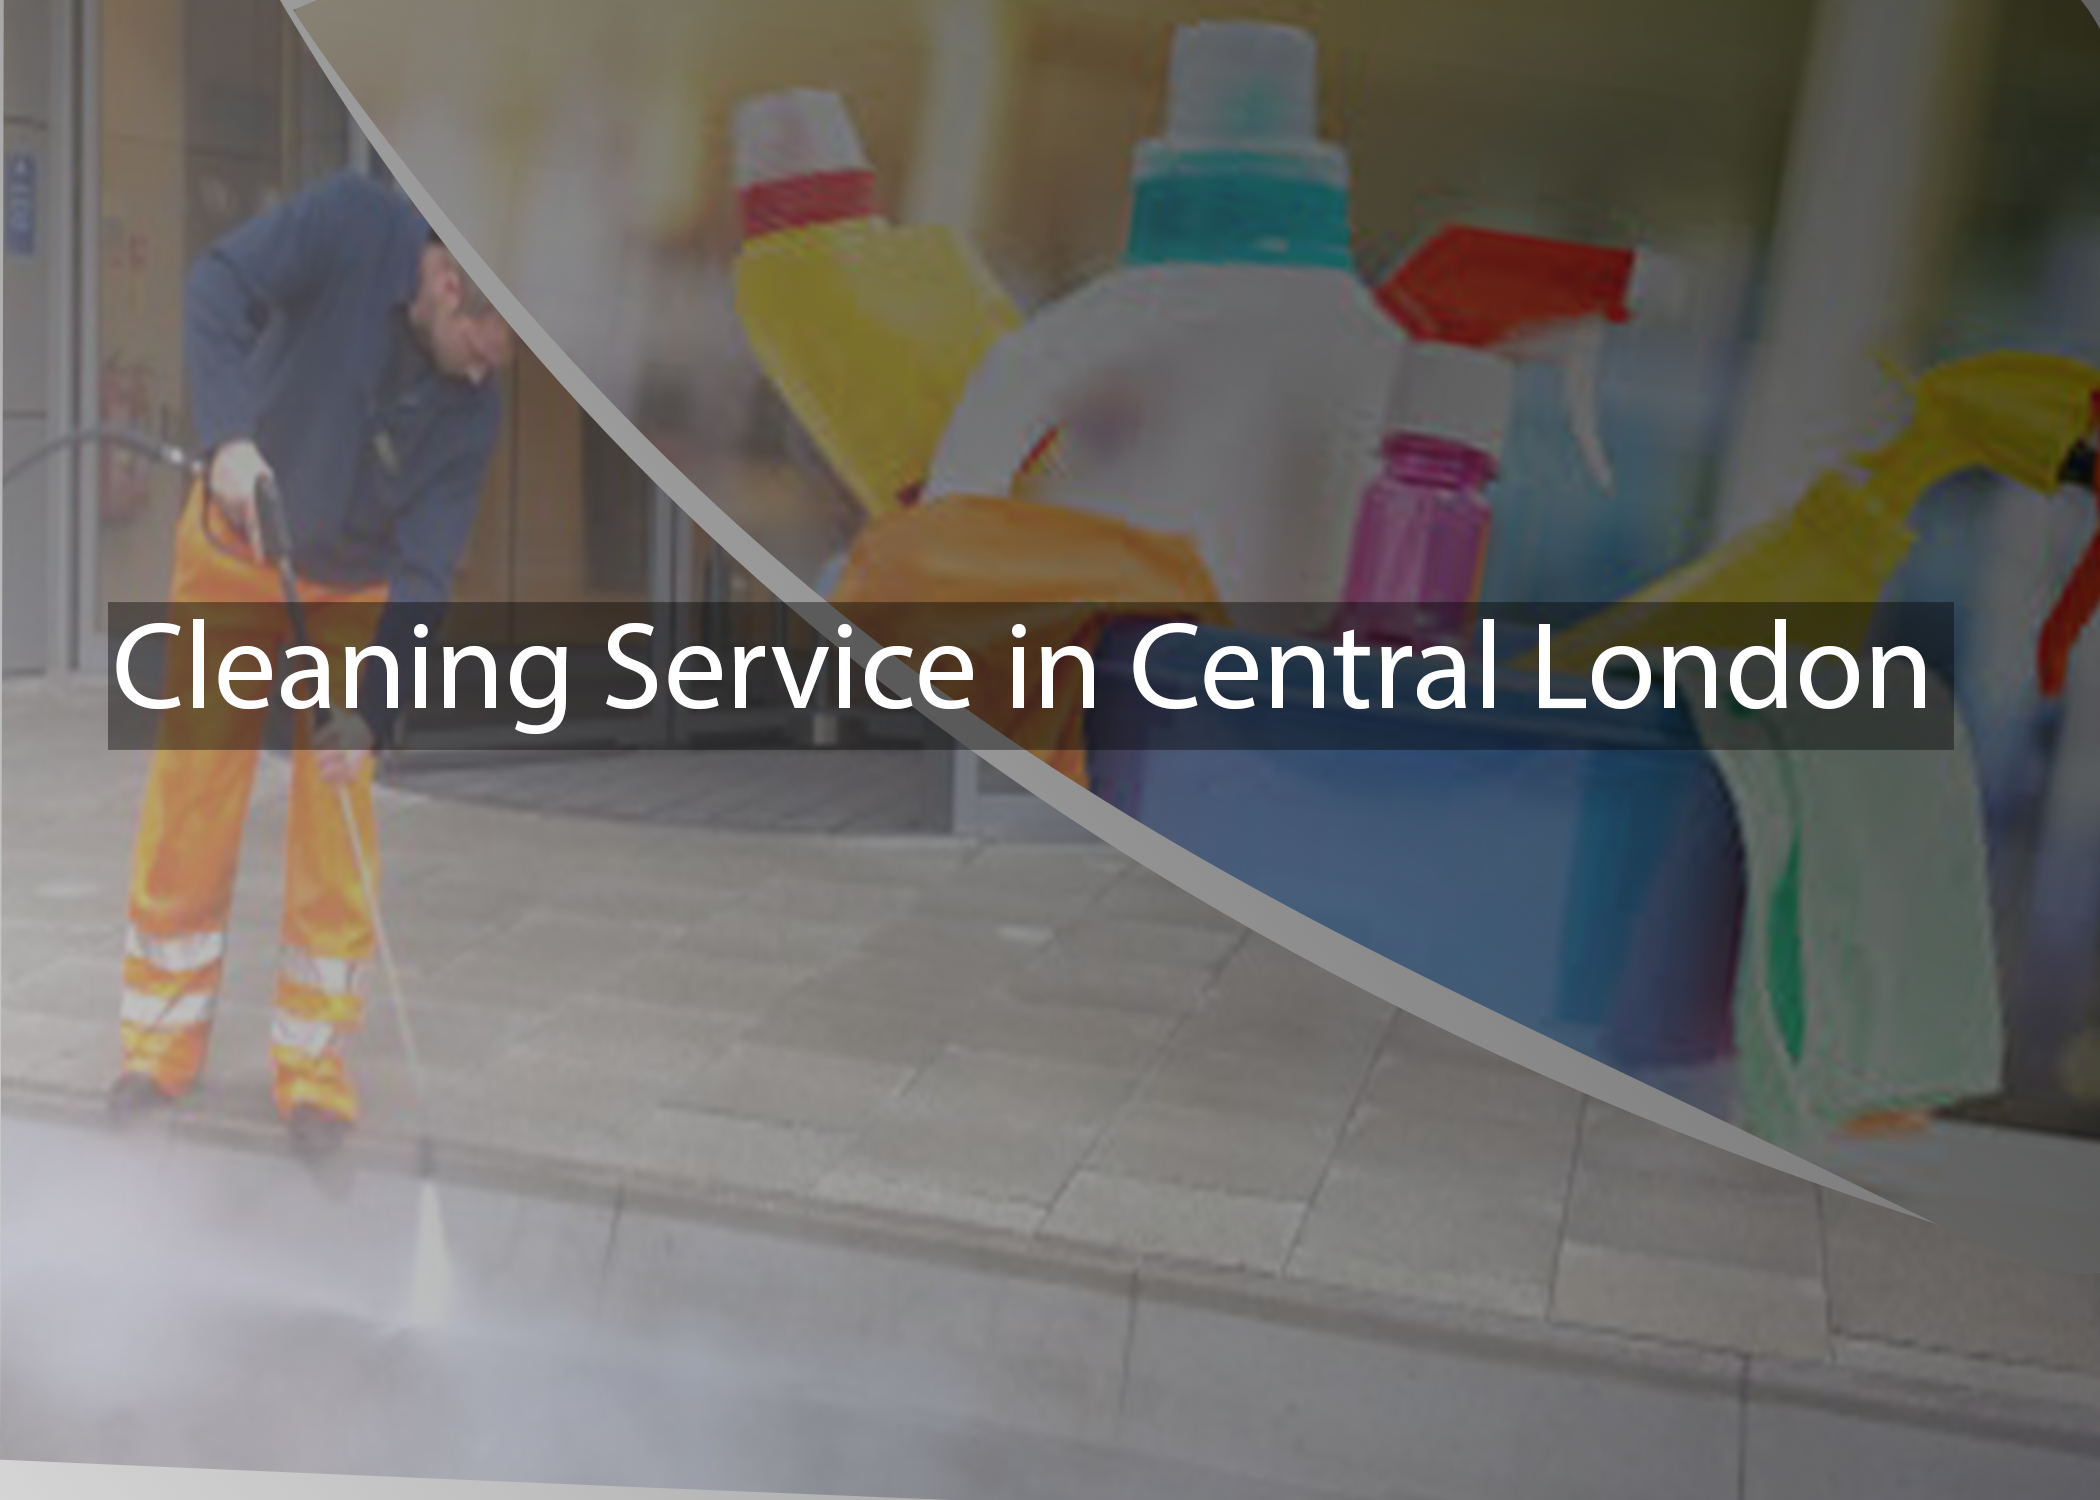 Cleaning Service in Central London